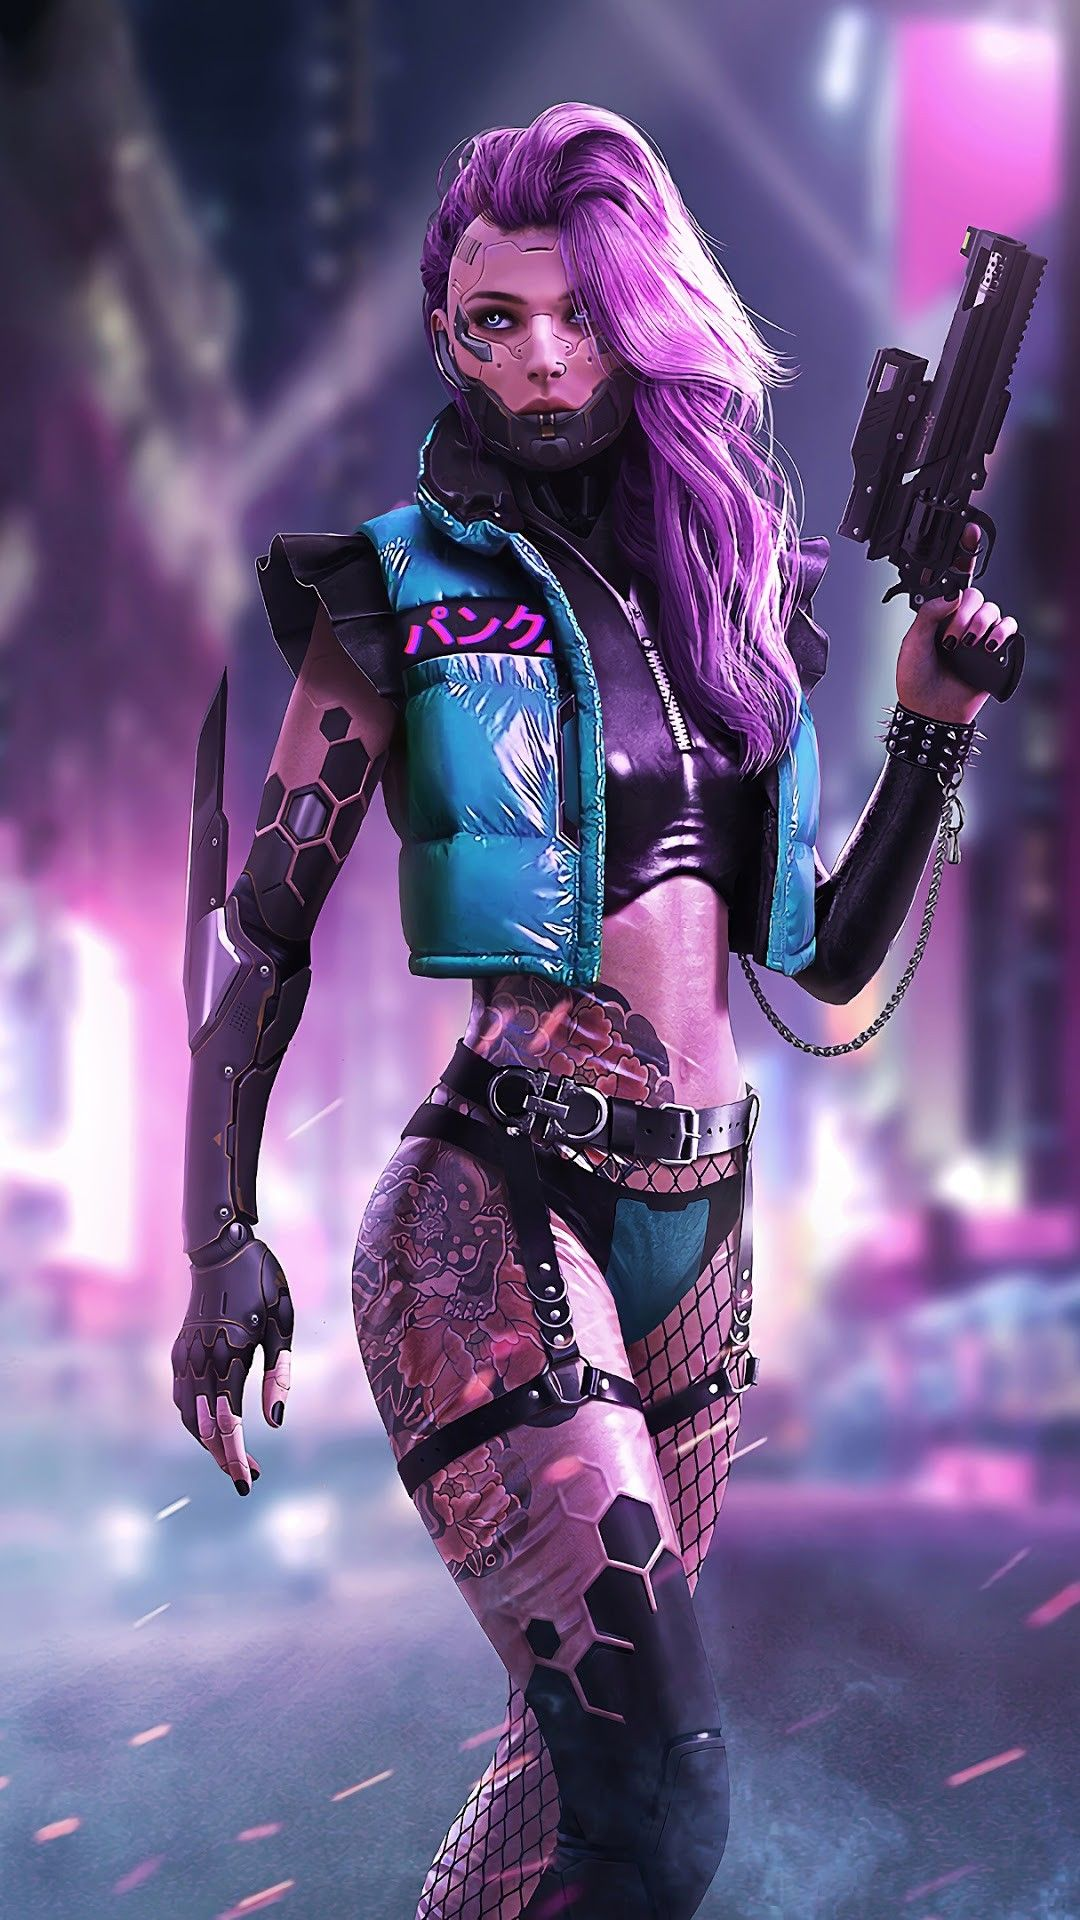 Pin by Codyshan on Shoes (With images) Cyberpunk girl